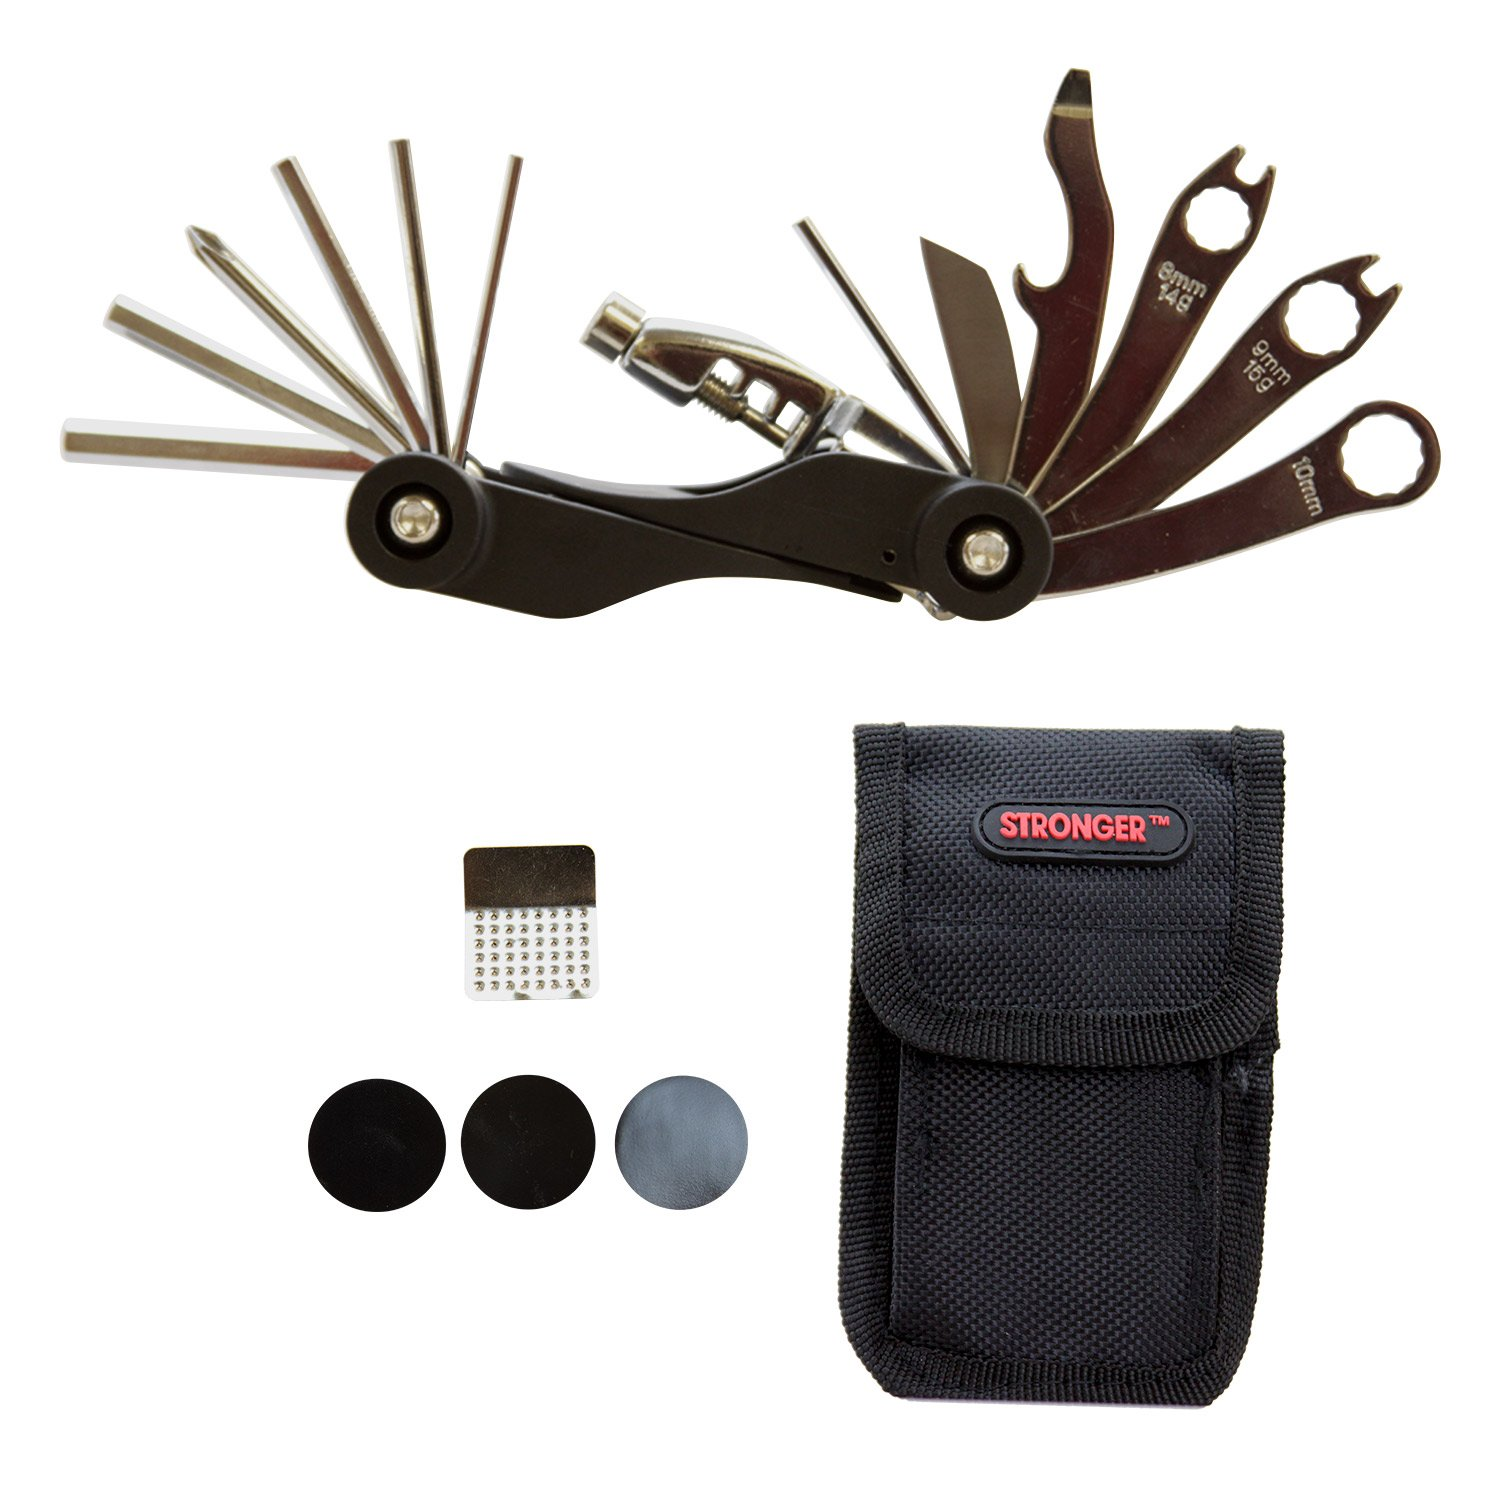 Strongrr Multi Bike Bicycle Tools 20 Functions for Performer JC-20 30 Speed Recumbent Trike with Tire Patch Nylon Bag Bicycle Cycling Maintenance Repair Tool Kit